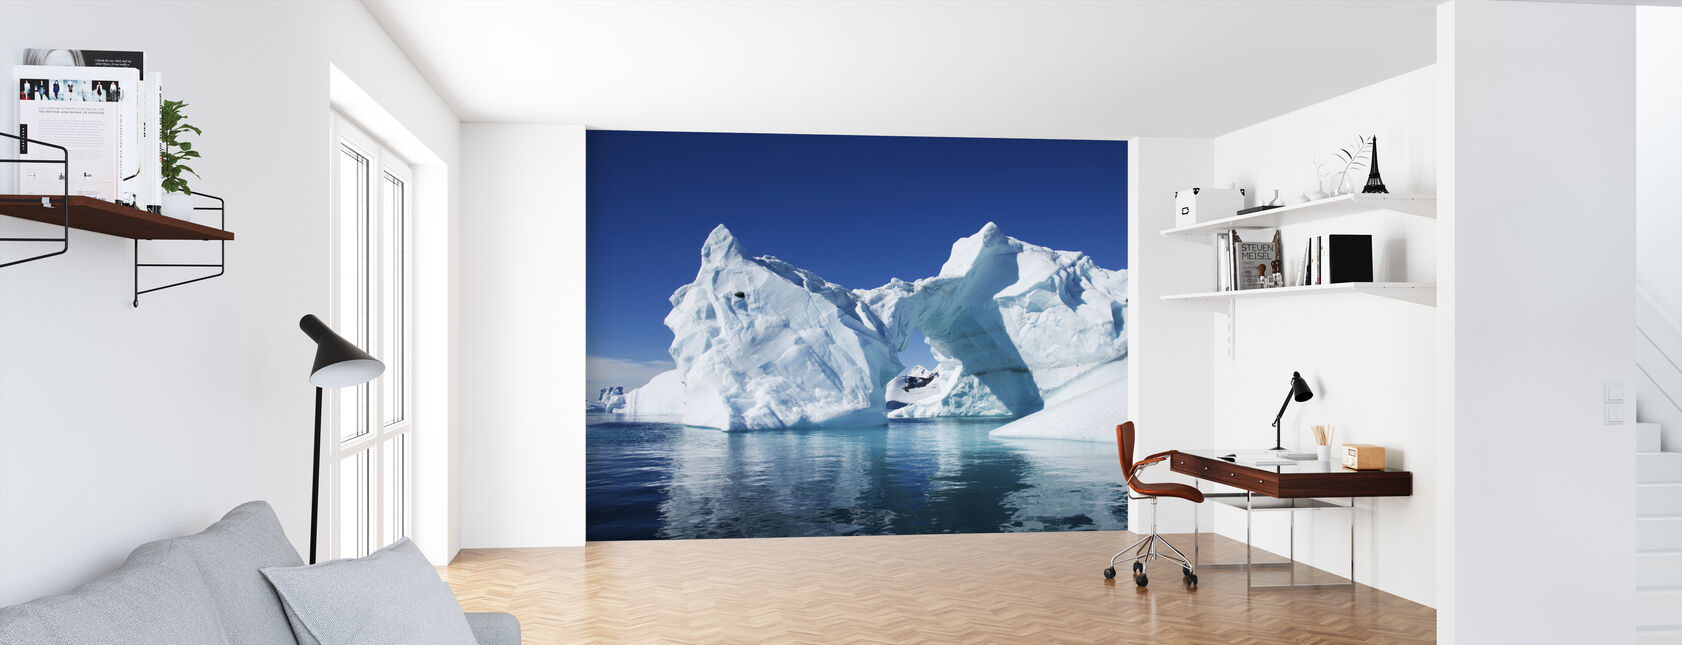 Iceberg Antarctica - Wallpaper - Office